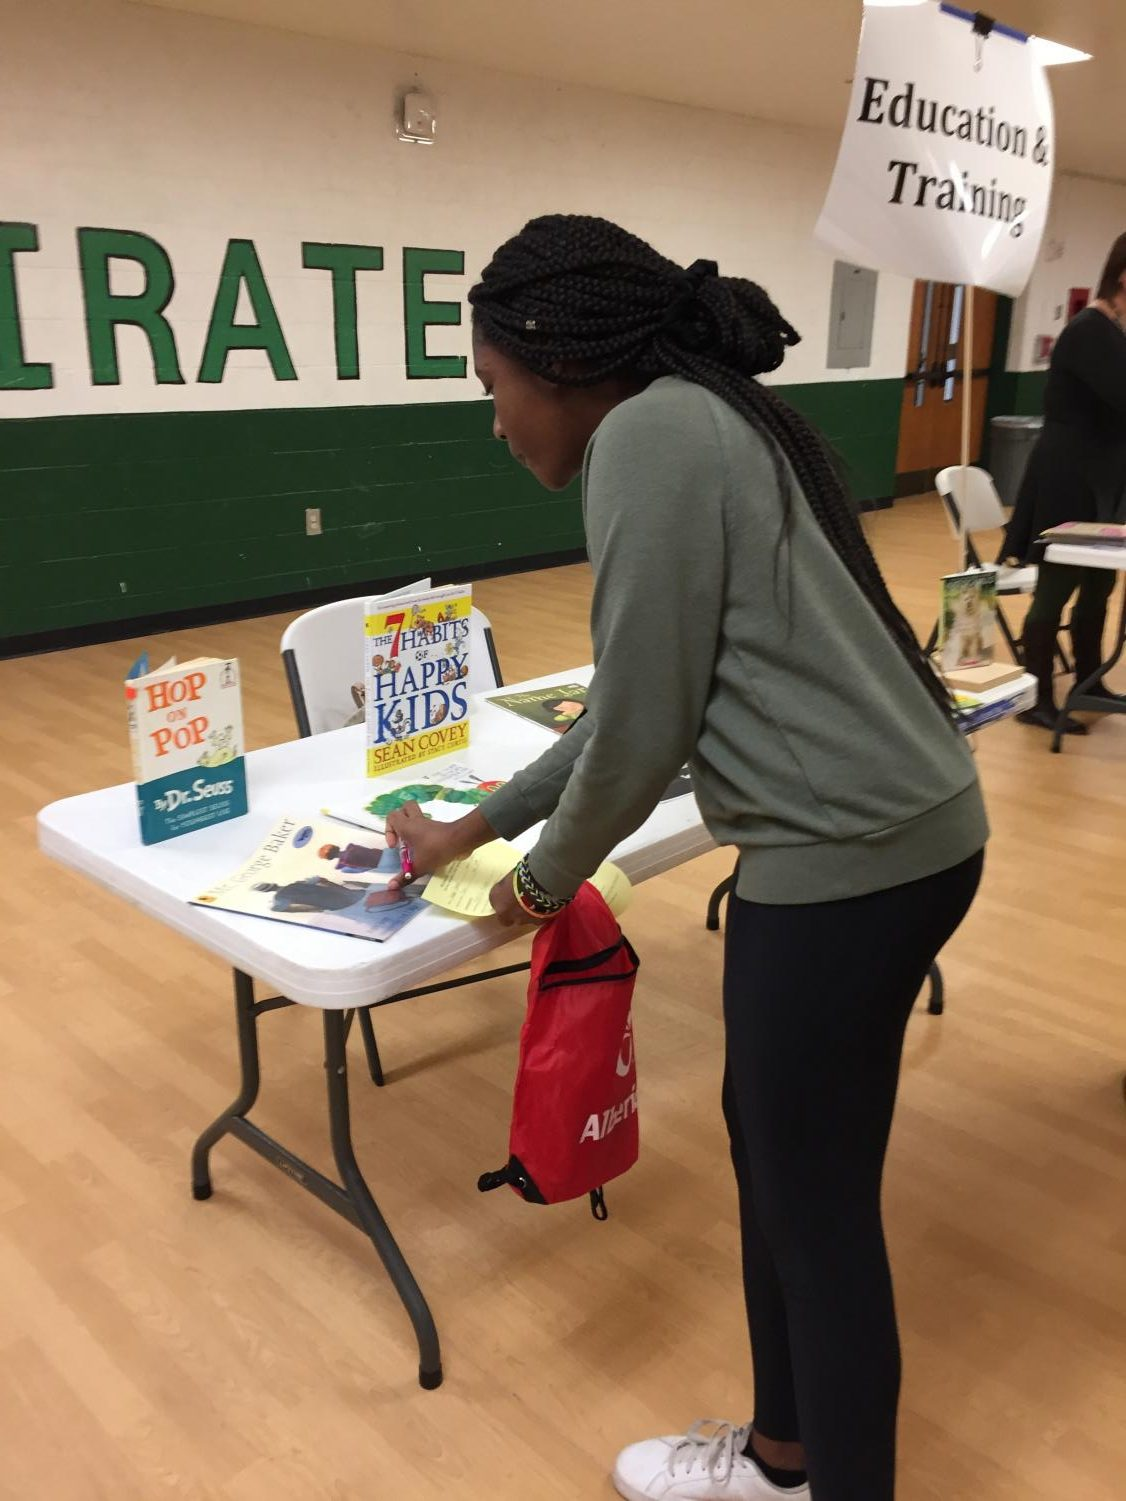 A student looks at materials available at the Career Fair table for those interested in becoming an educator.